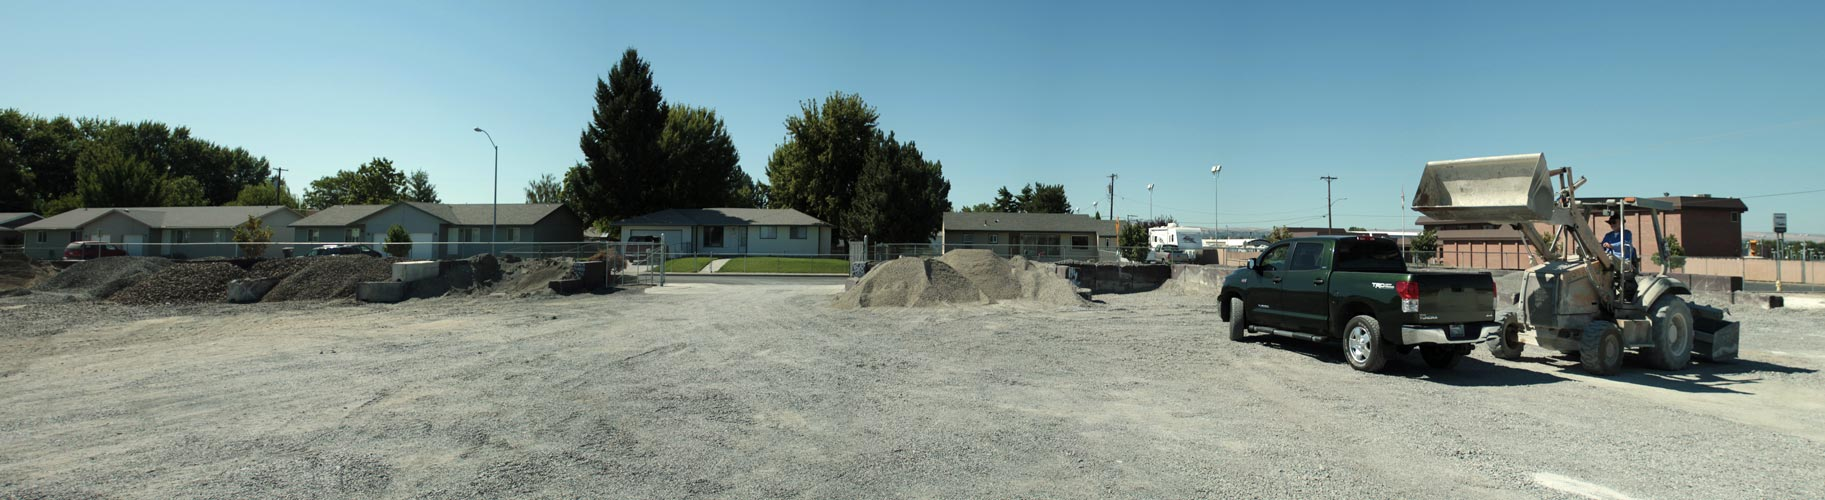 Purchase Gravel at Pasco Rentals Everyday!